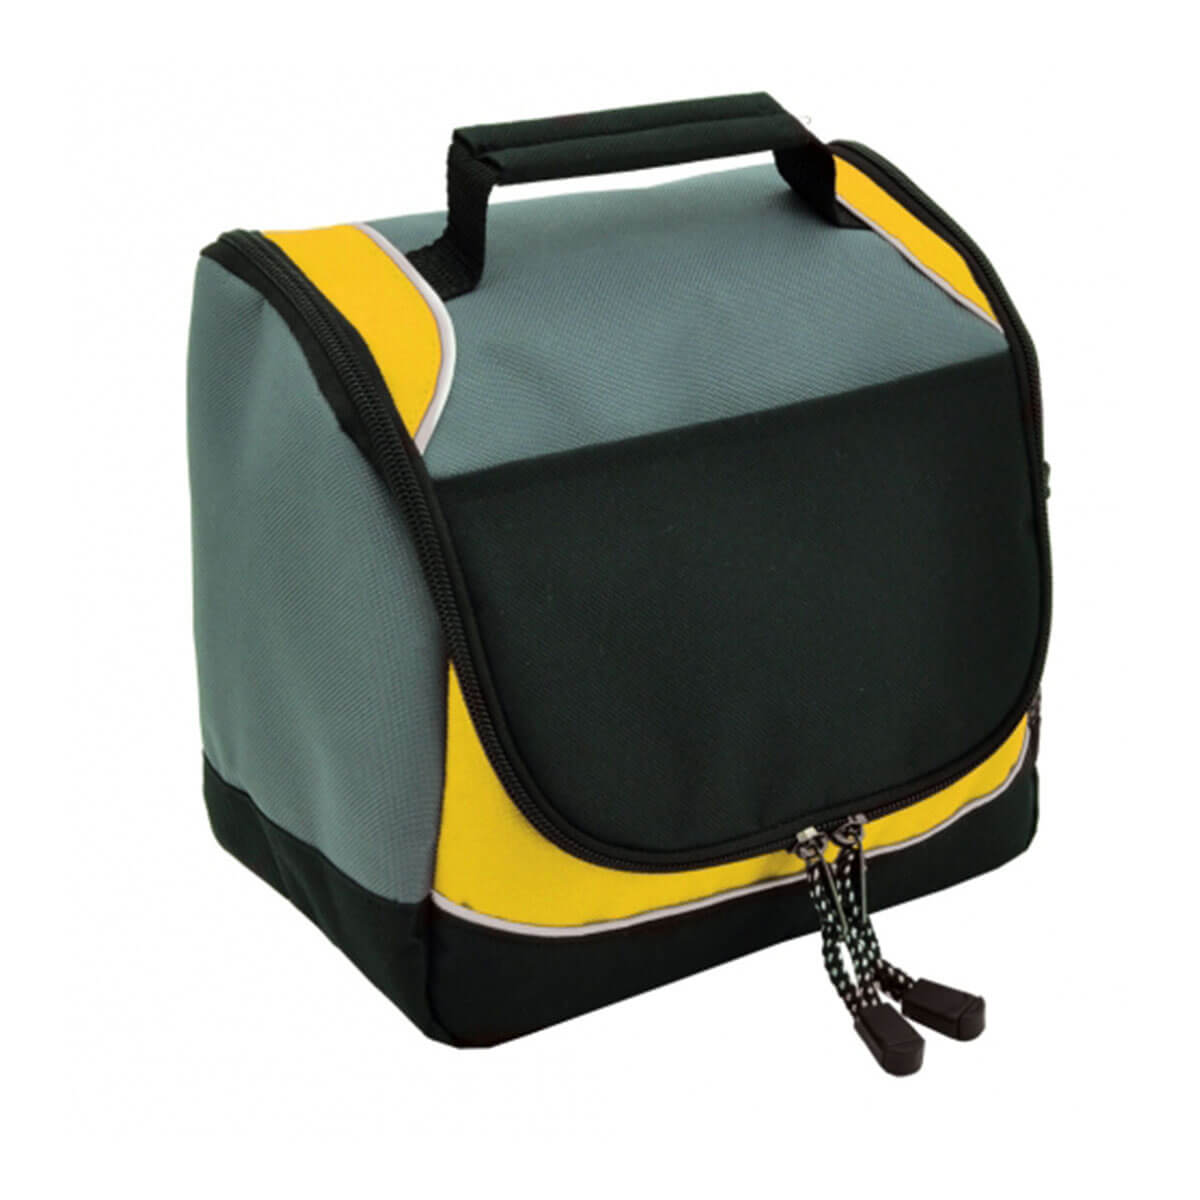 Rydges cooler bag-Black / Gold / White / Charcoal